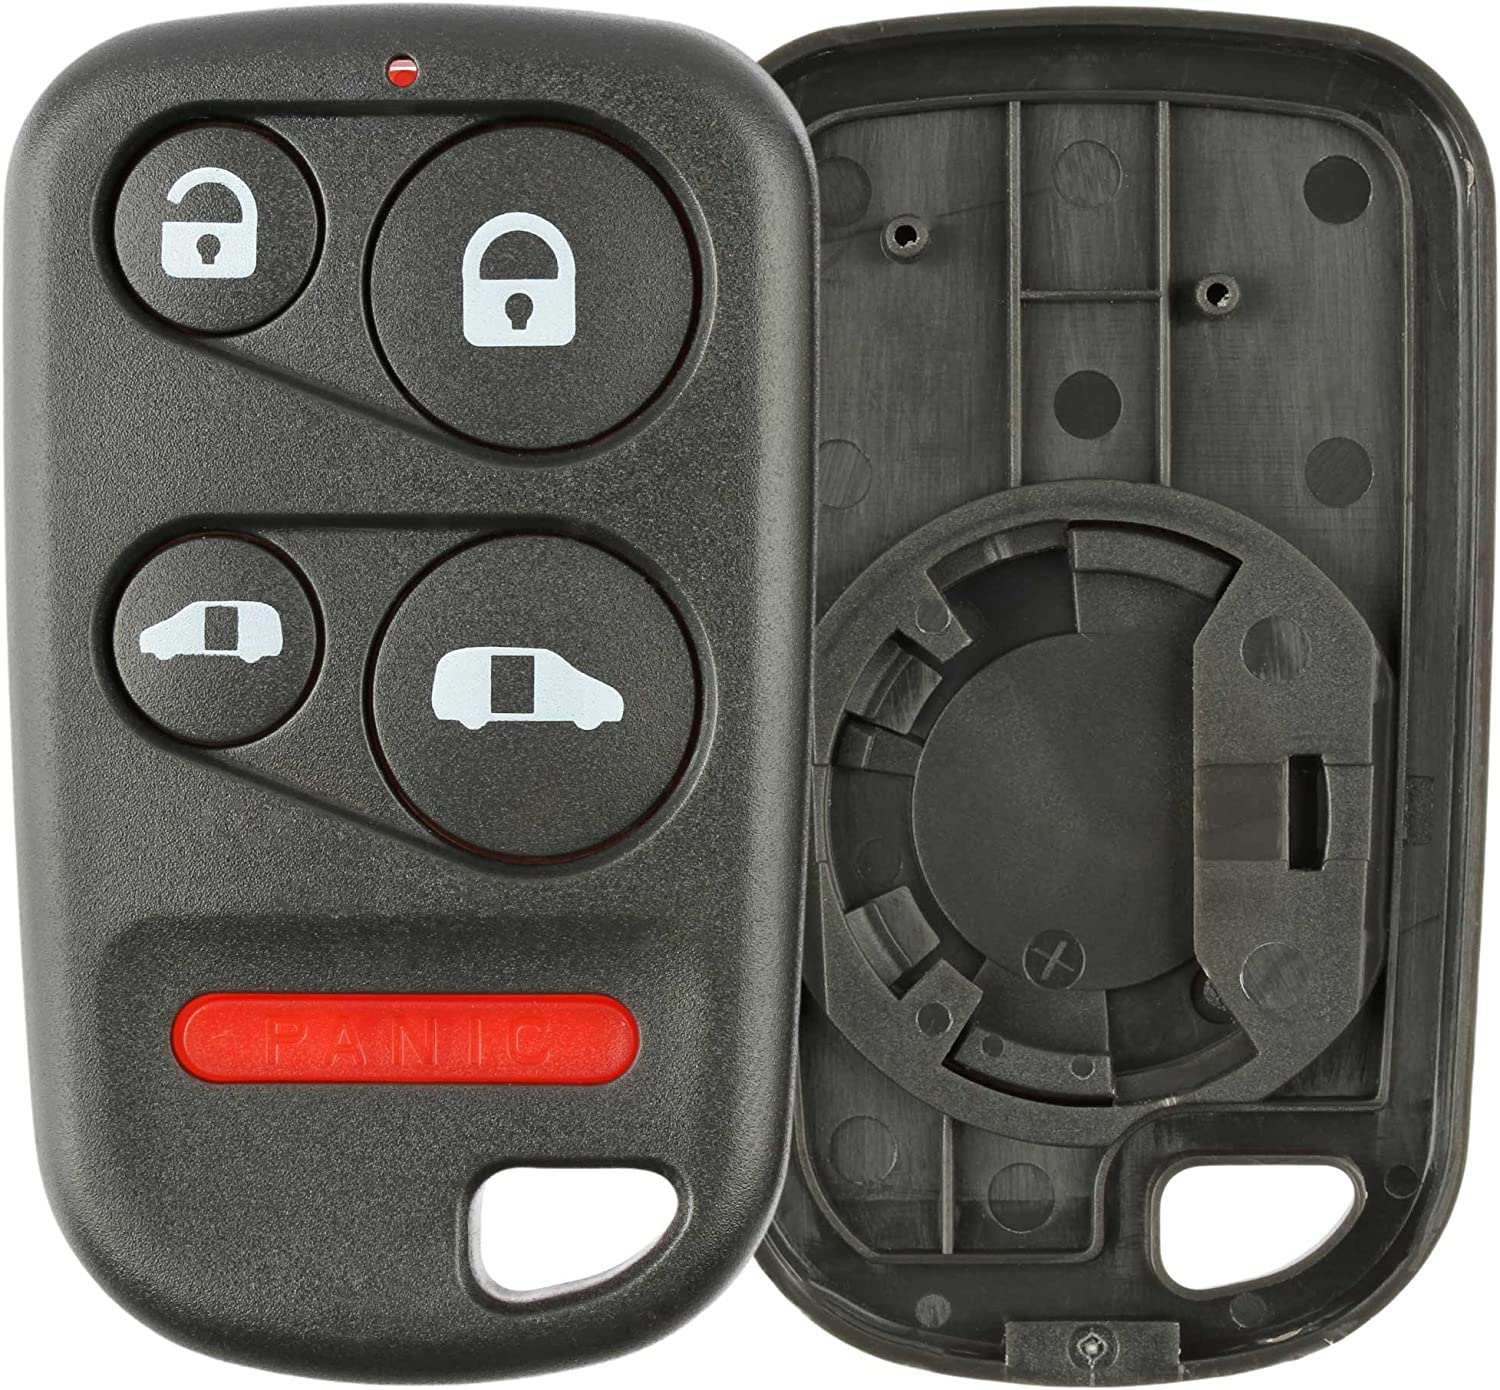 KeylessOption Just The Case Keyless Entry Remote Key Fob Shell for 16245100-29